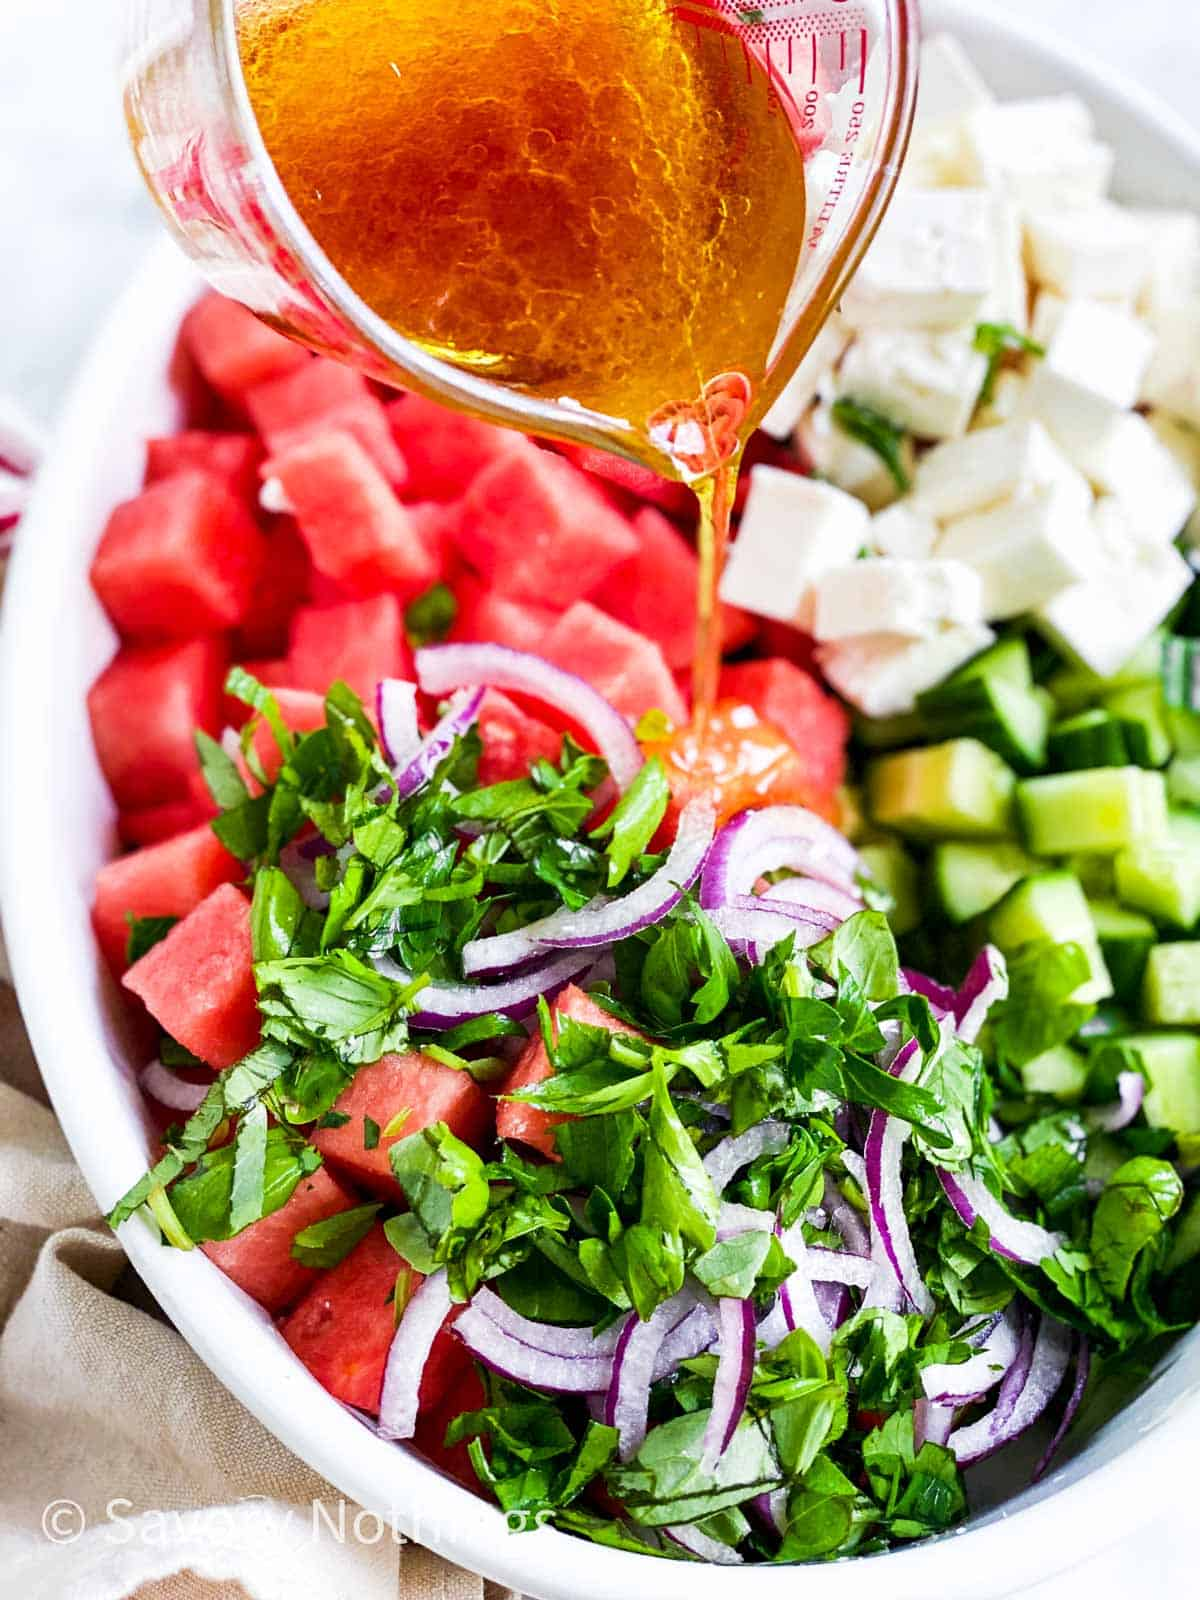 vinaigrette pouring from glass jug over ingredients for watermelon salad